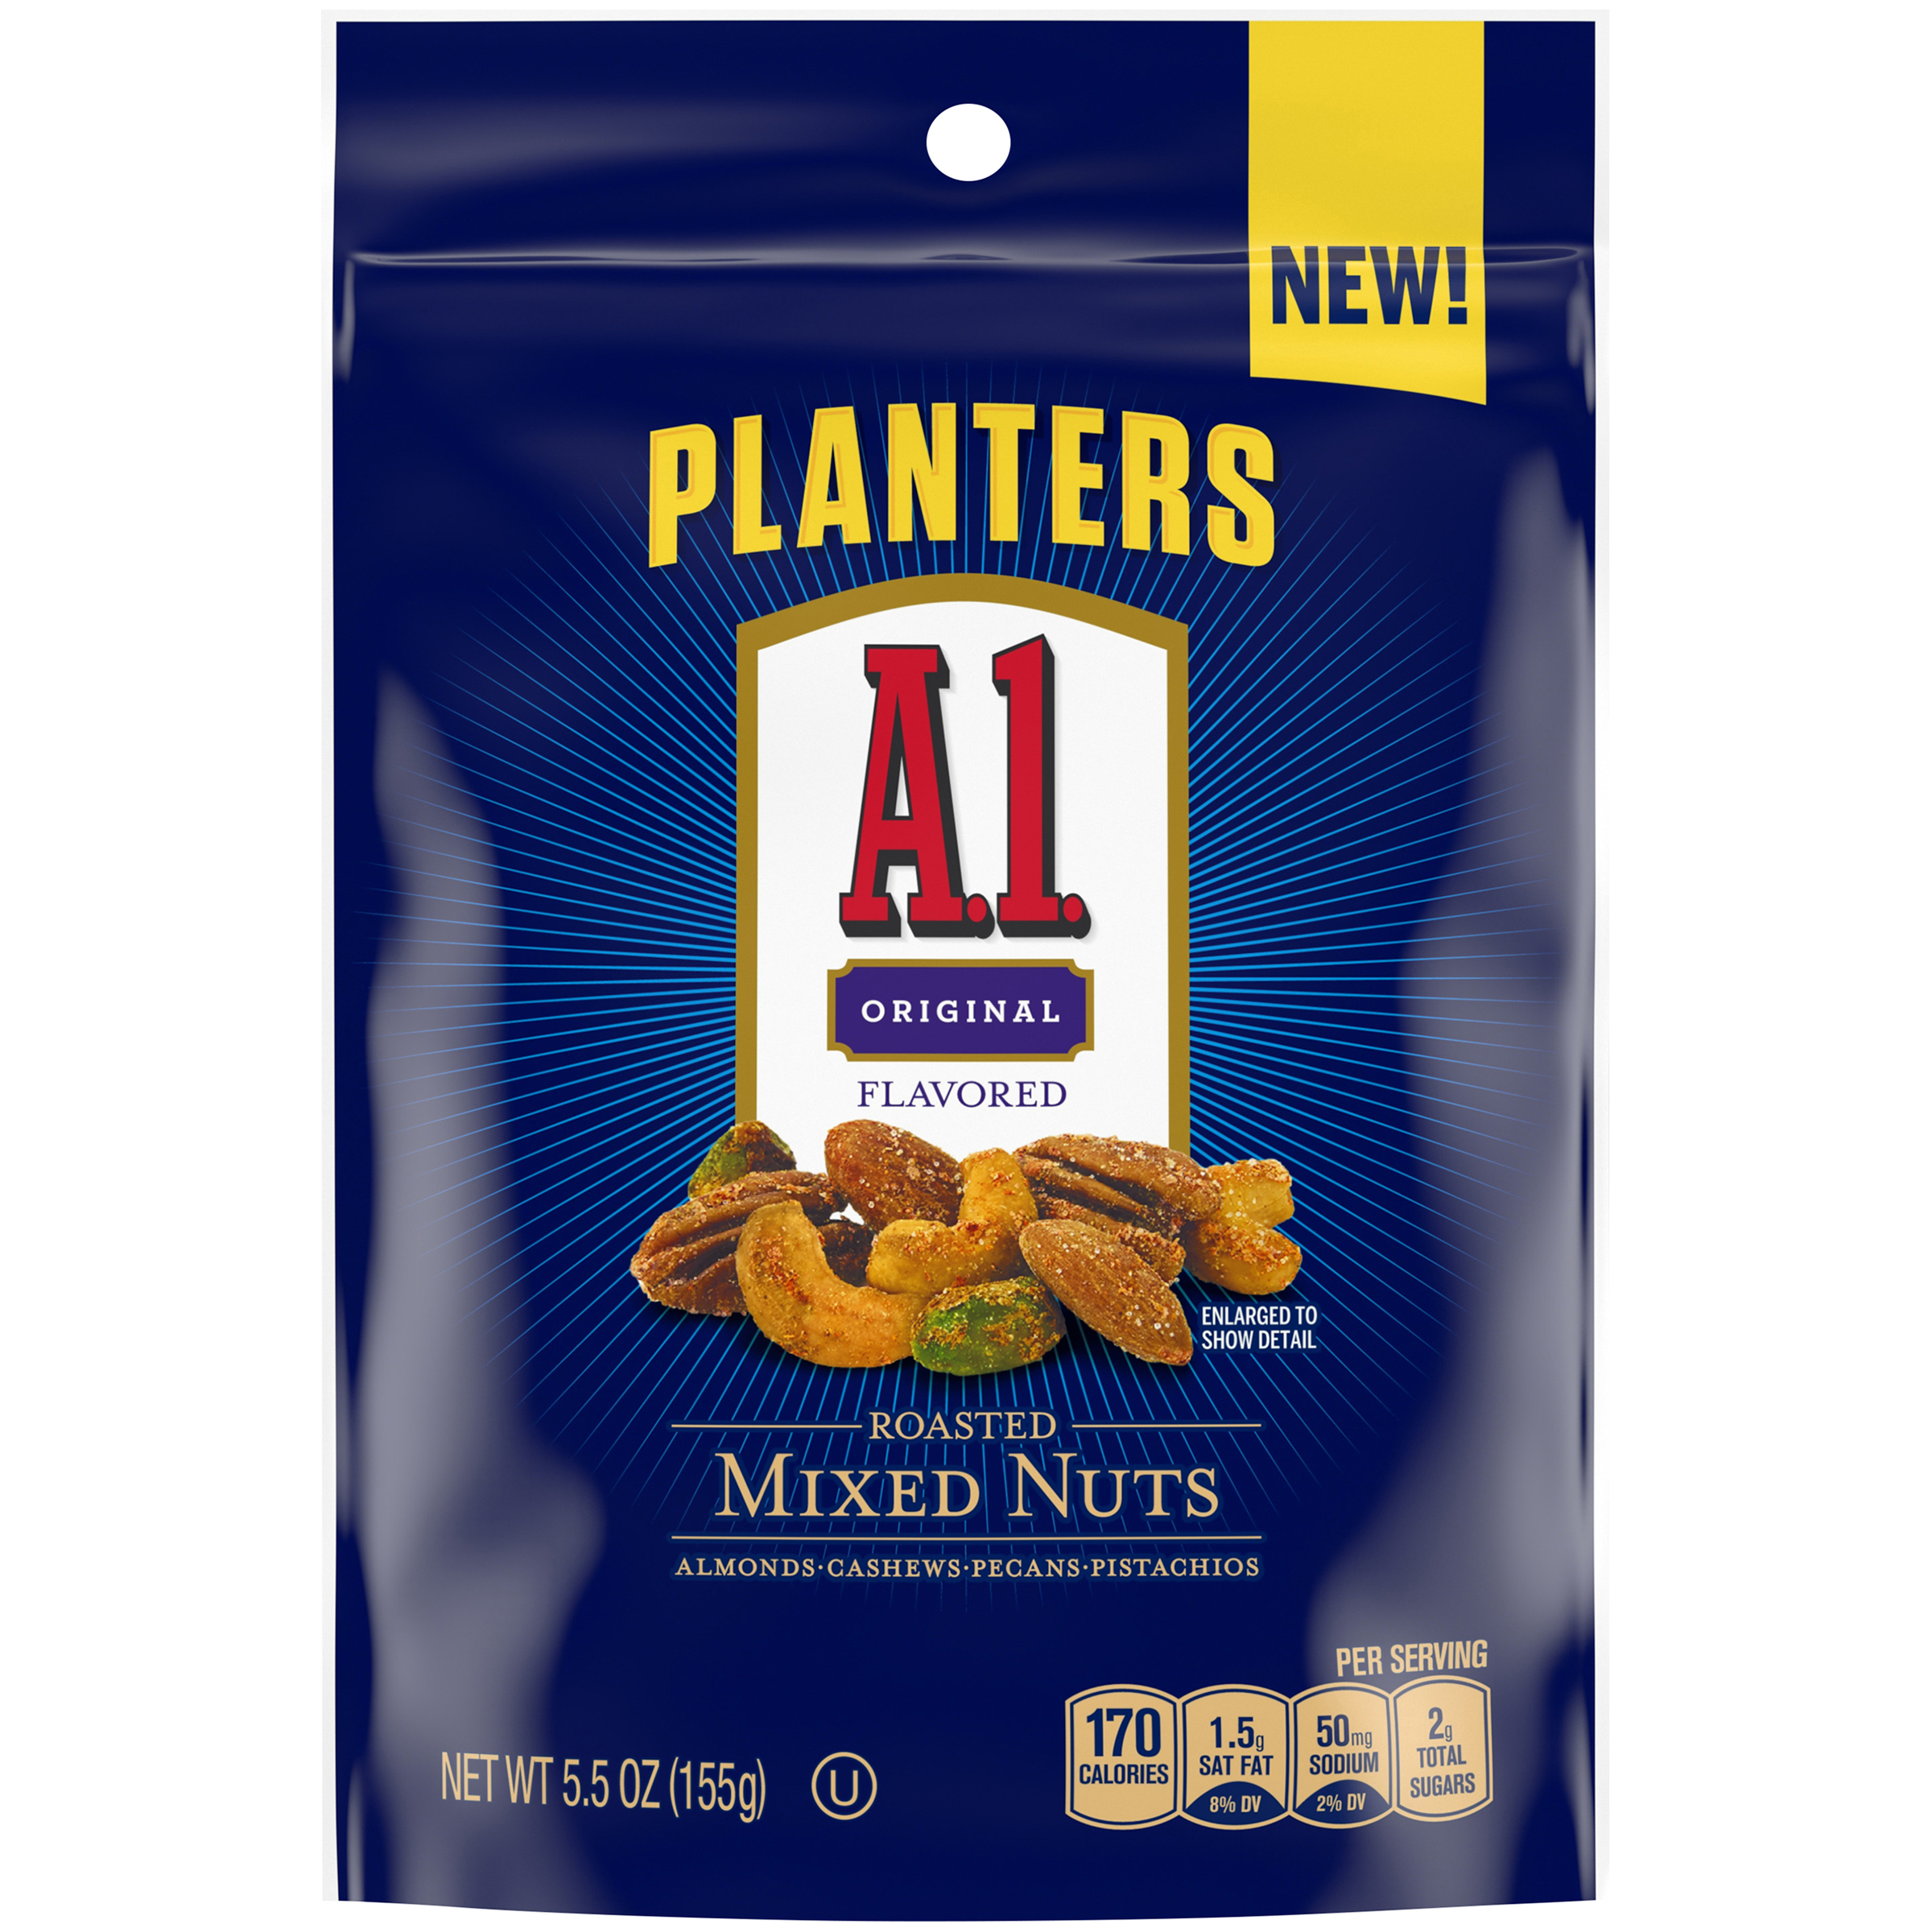 Planters A1 Sauce Flavored Roasted Mixed Nuts, 5 oz Bag